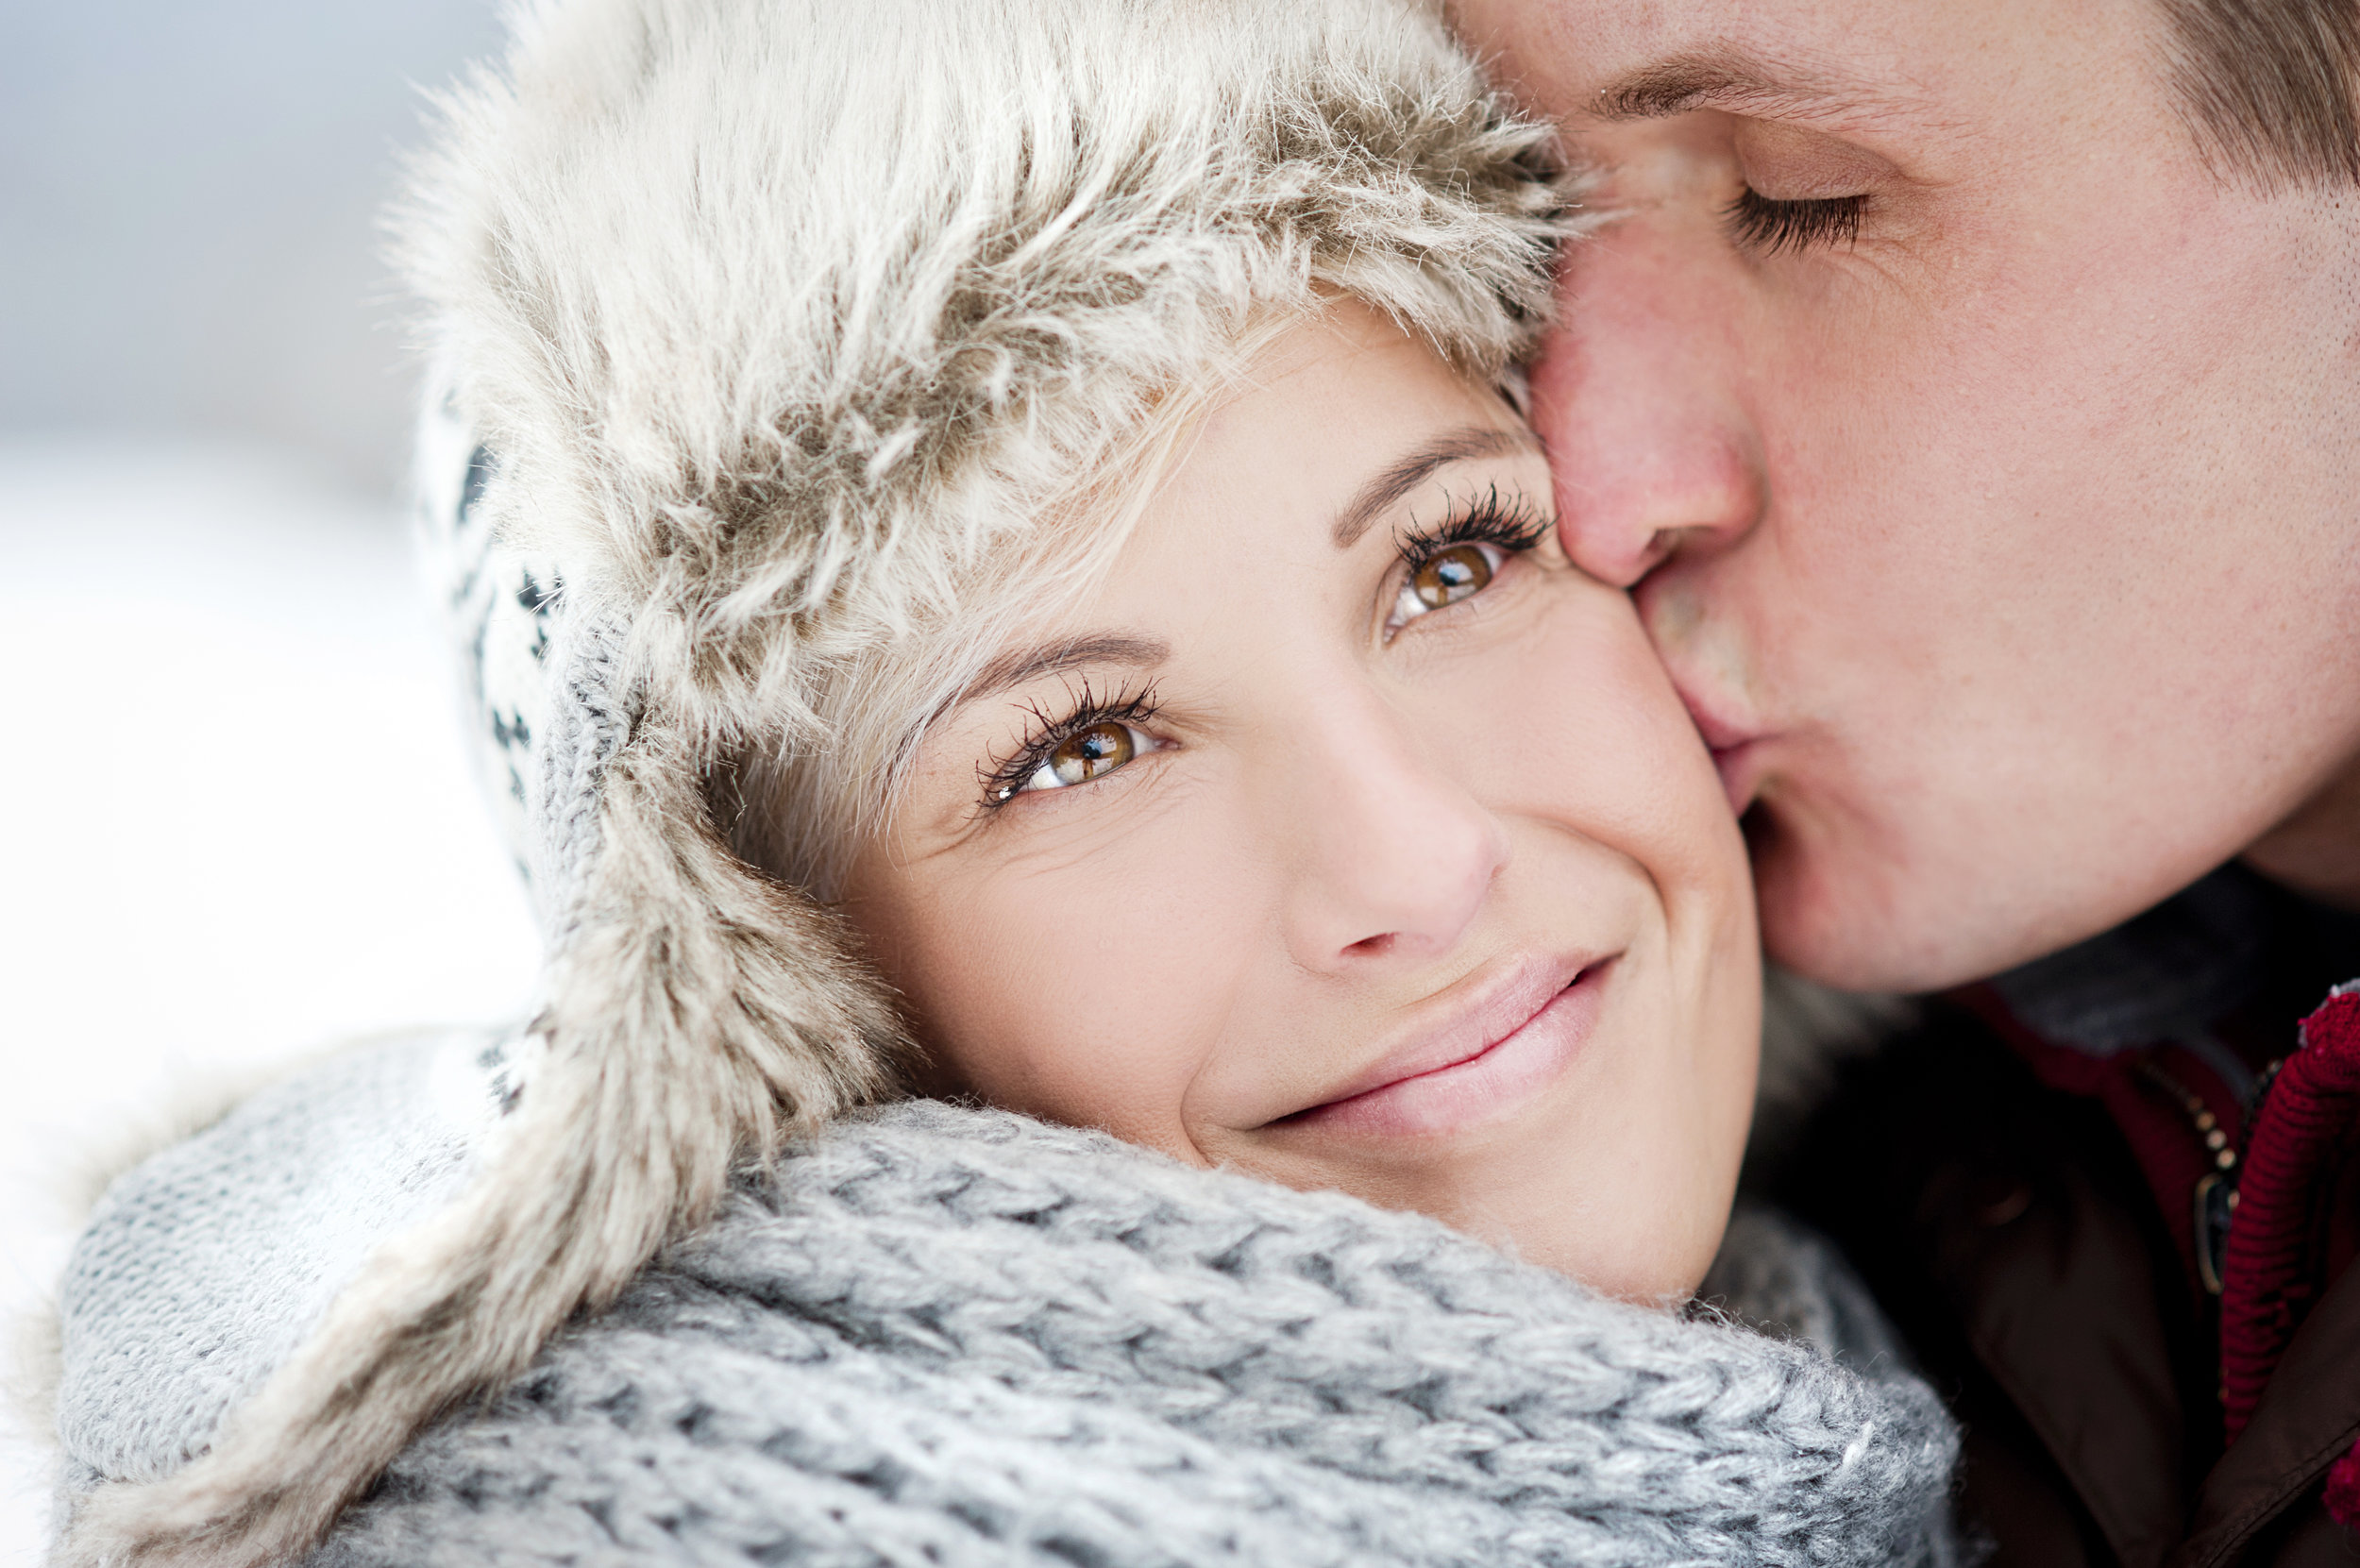 graphicstock-happy-couple-is-having-romantic-time-in-snowy-countryside_H0WIW035Zb.jpg